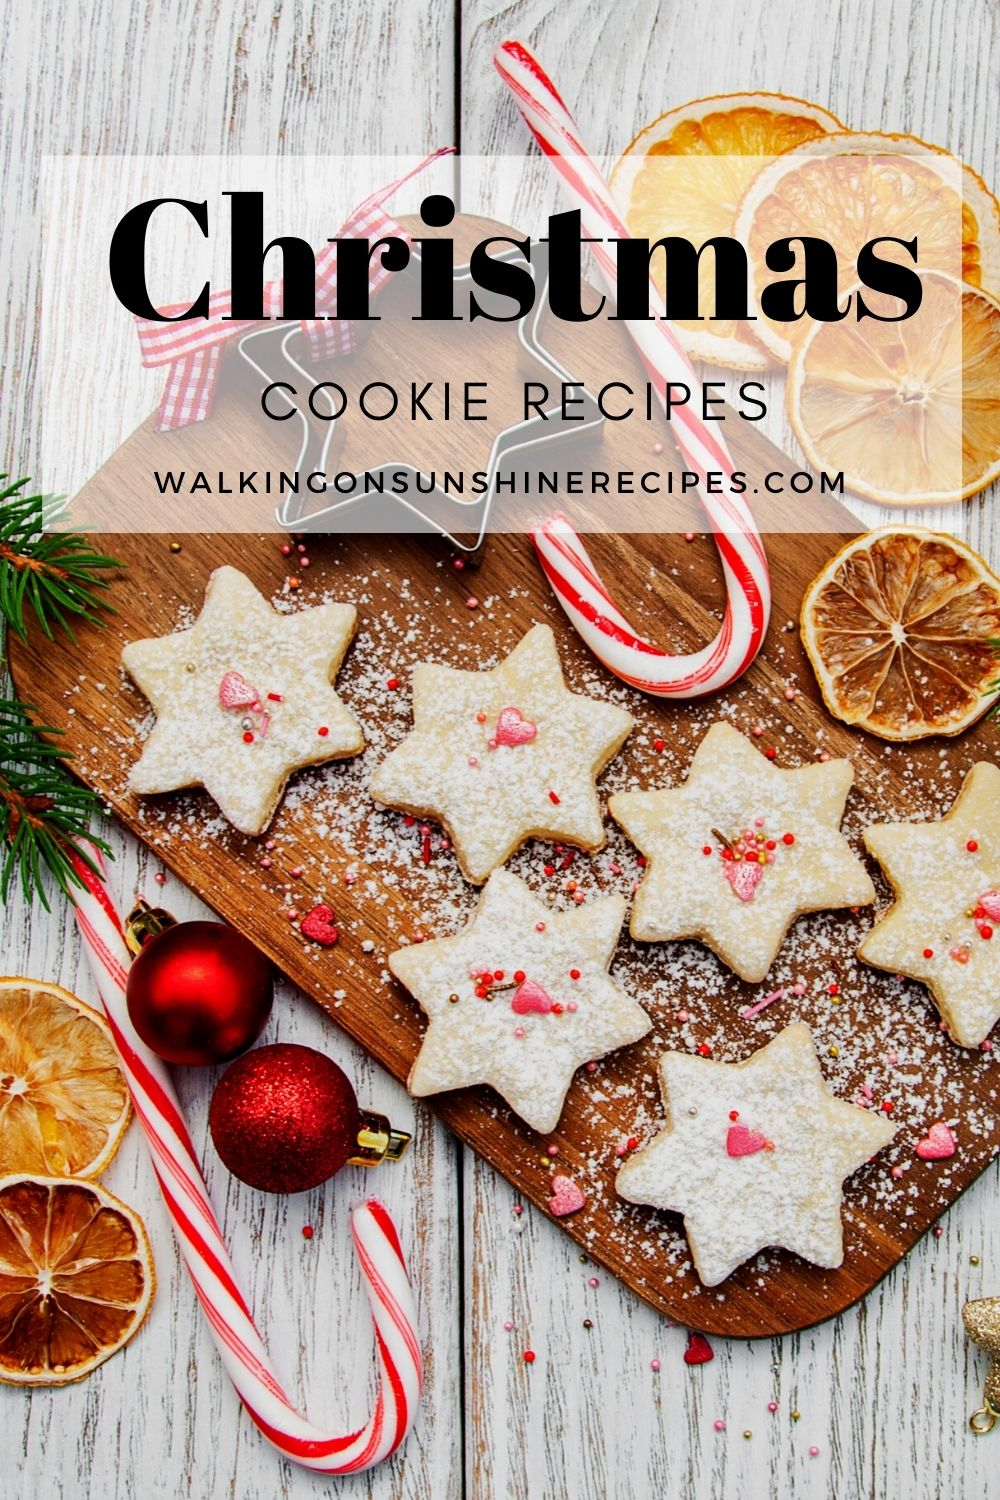 Christmas cookies in the shape of stars with peppermint candy canes and orange slices on cutting board.